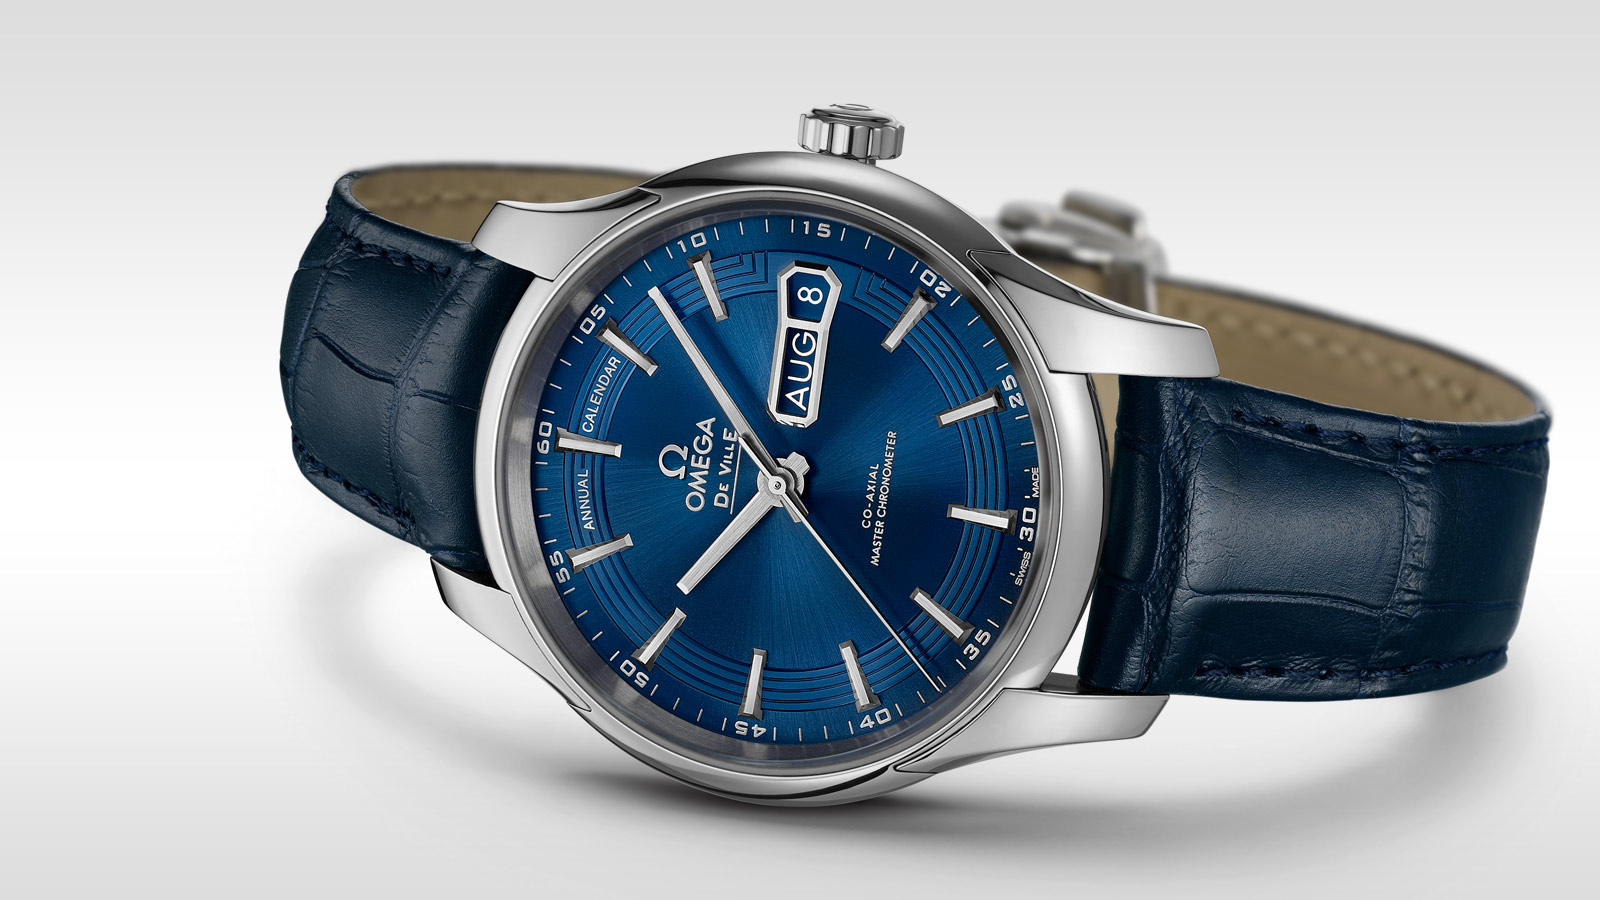 De Ville Hour Vision Hour Vision Omega Co‑Axial Master Chronometer Annual Calendar 41 mm - 433.33.41.22.03.001 - View 1